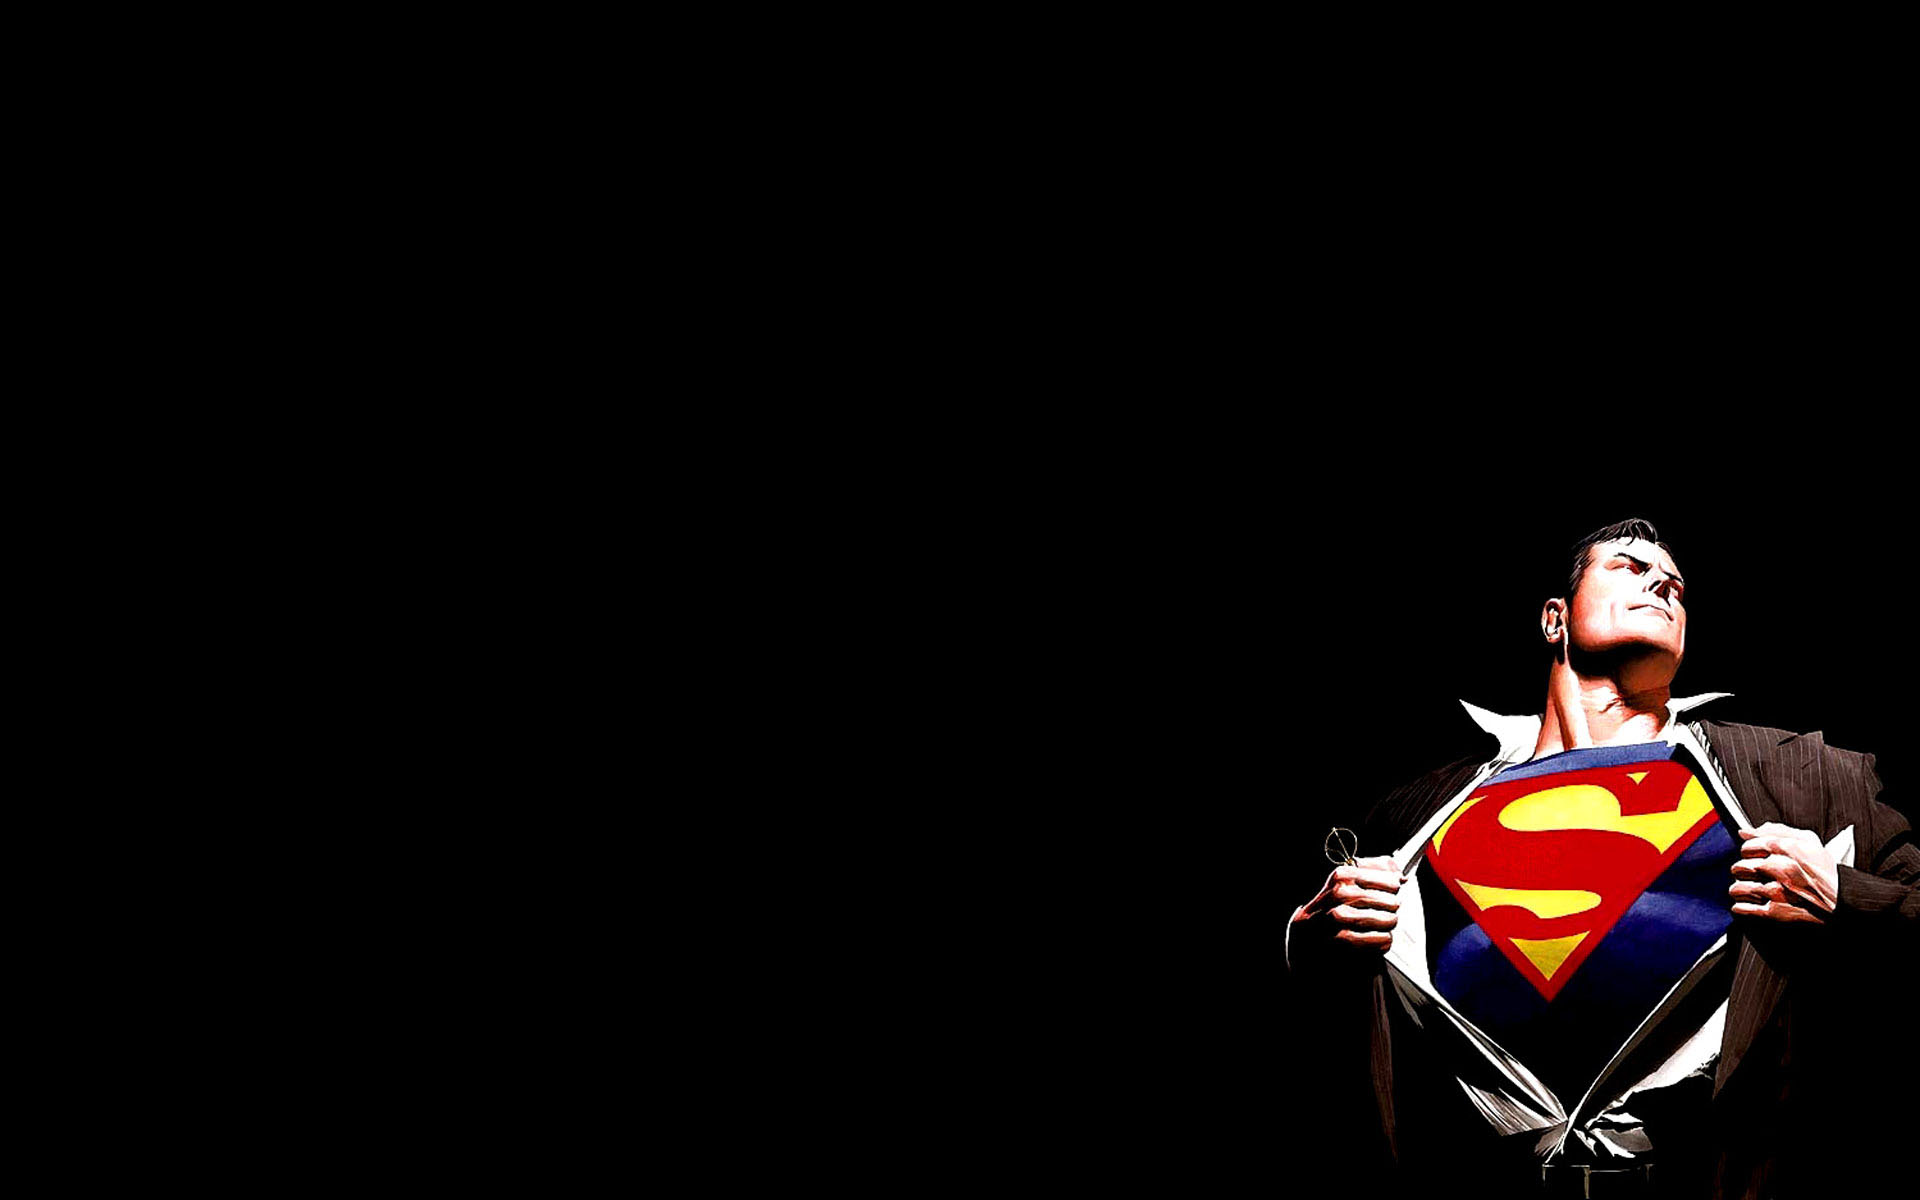 Superman Wallpaper hd Black hd Superman Wallpaper is One